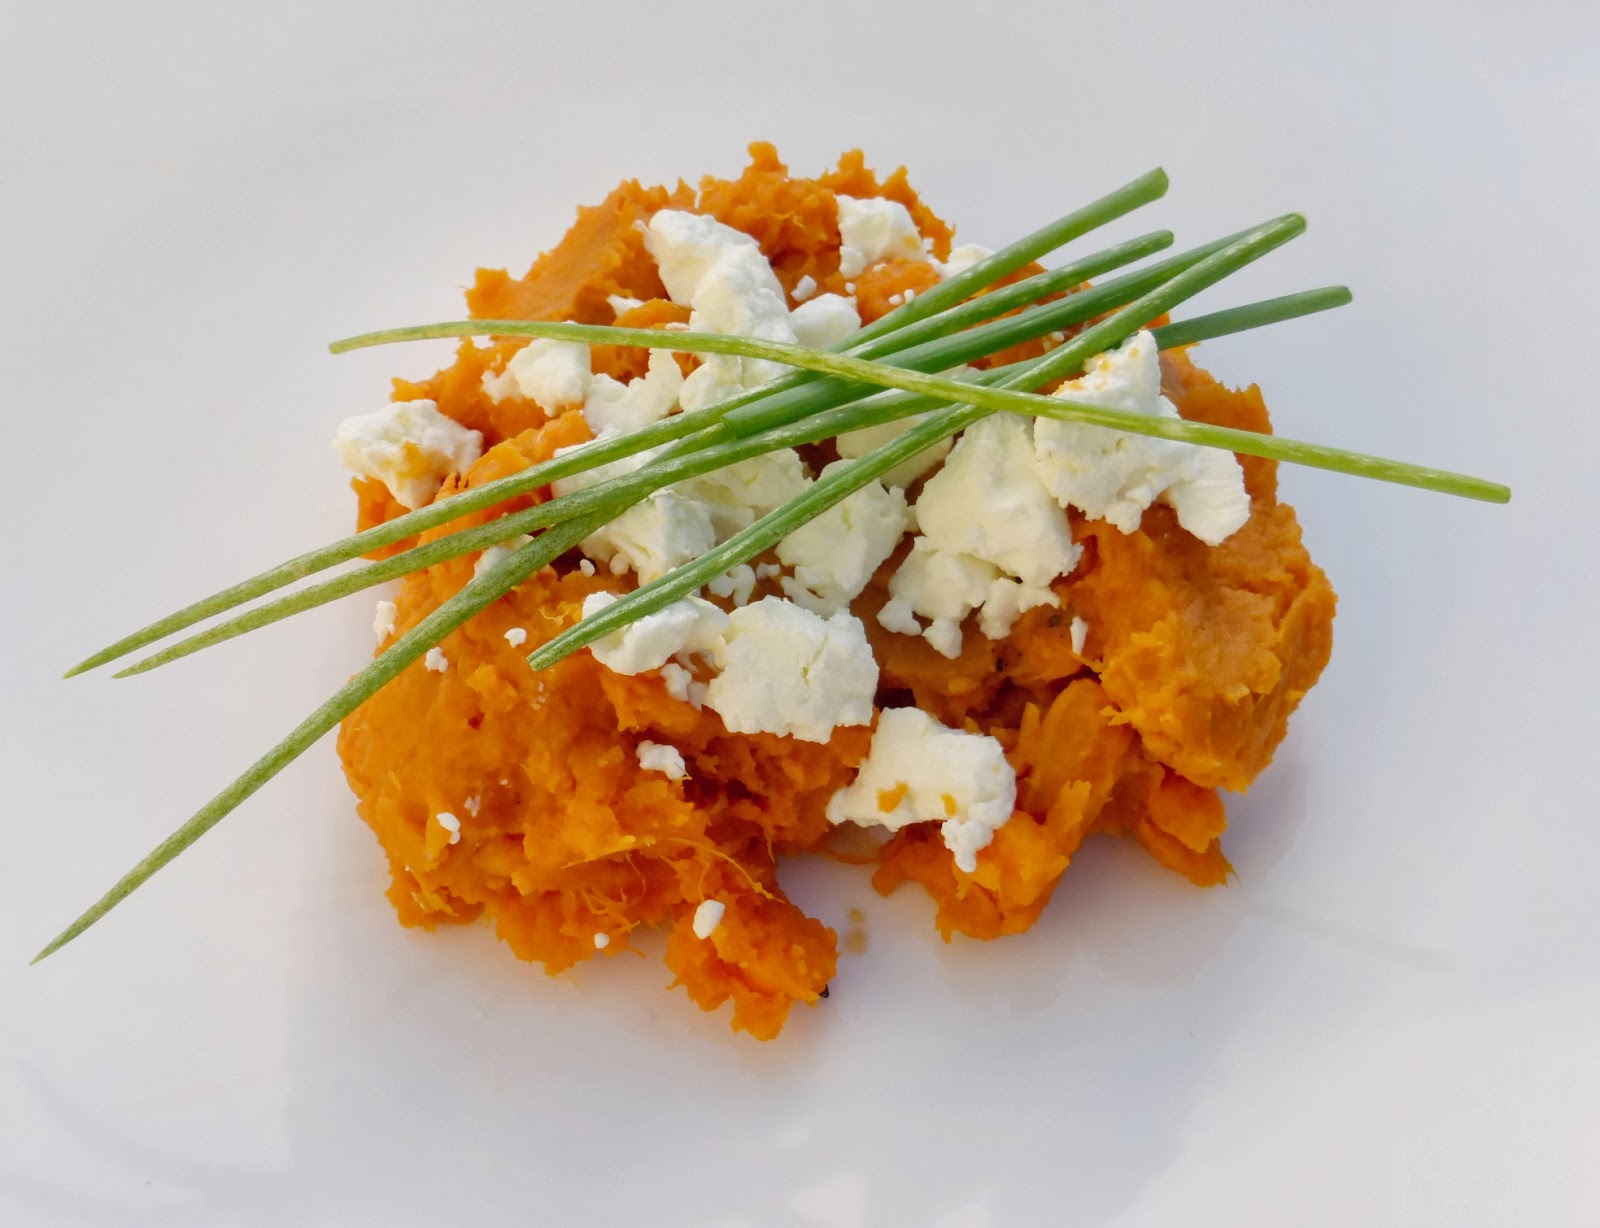 mashed yams (sweet potatoes) with goat cheese and green onions